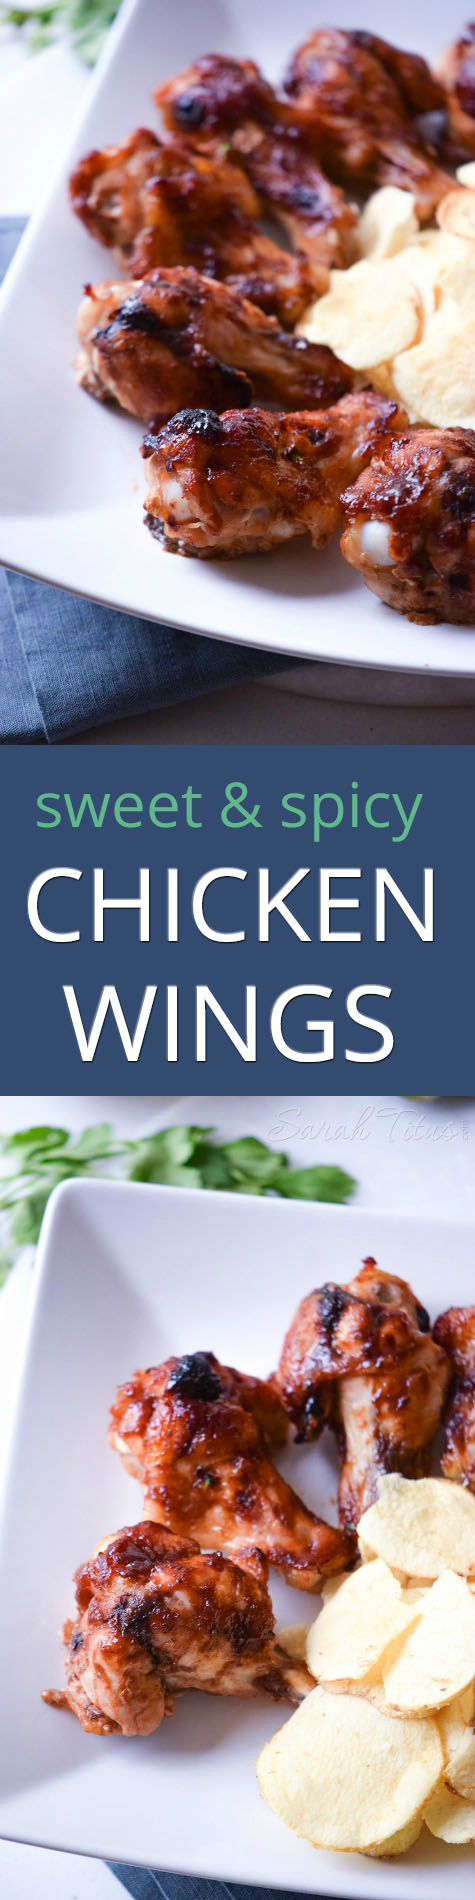 These sweet and spicy chicken wings work perfect for lunch with your friends, a picnic, that next football event, or your family dinner and are super easy to make!